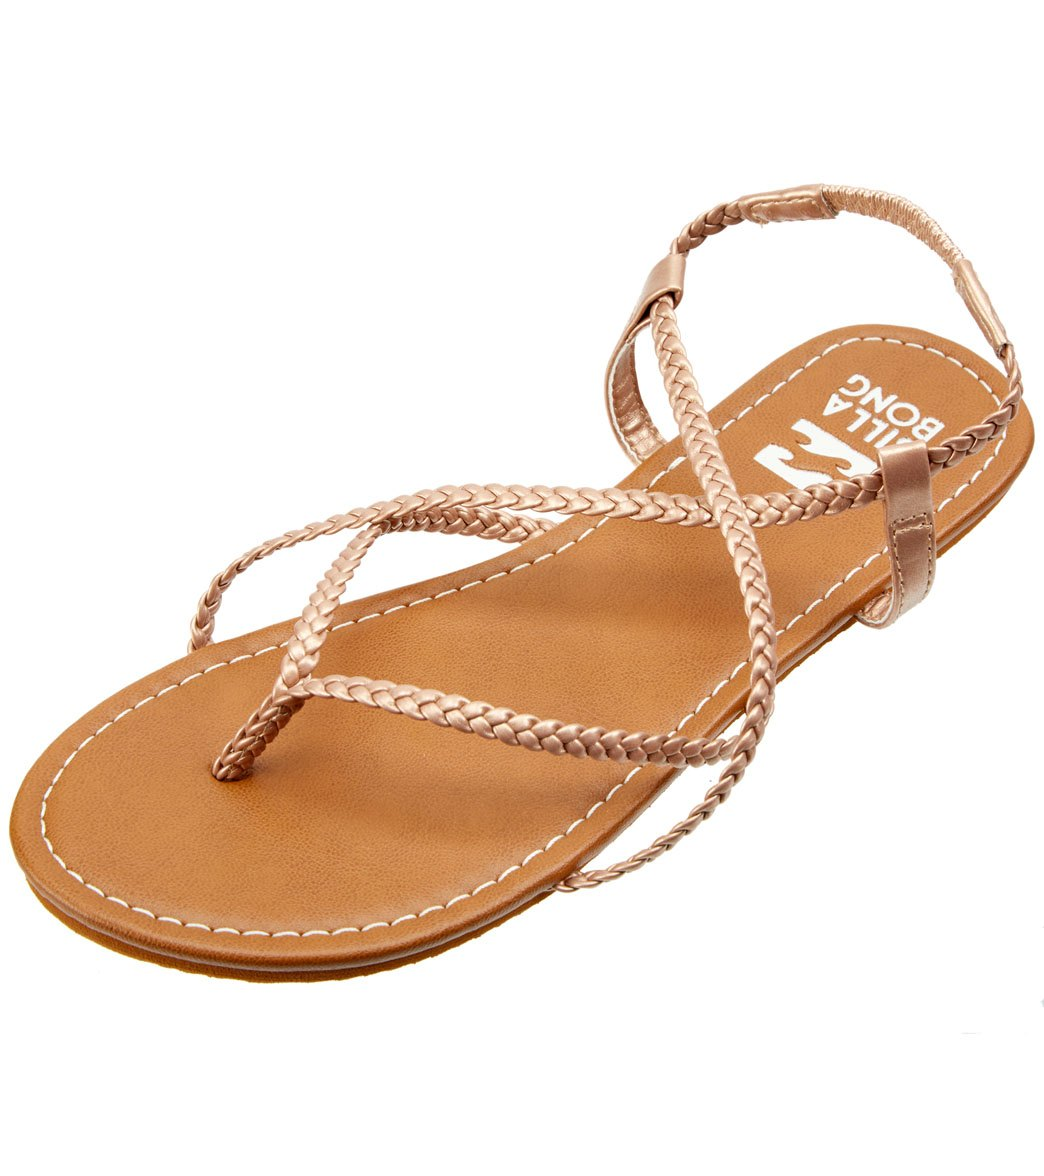 ff71f69c8194 Billabong Women s Crossing Over 2 Sandal at SwimOutlet.com